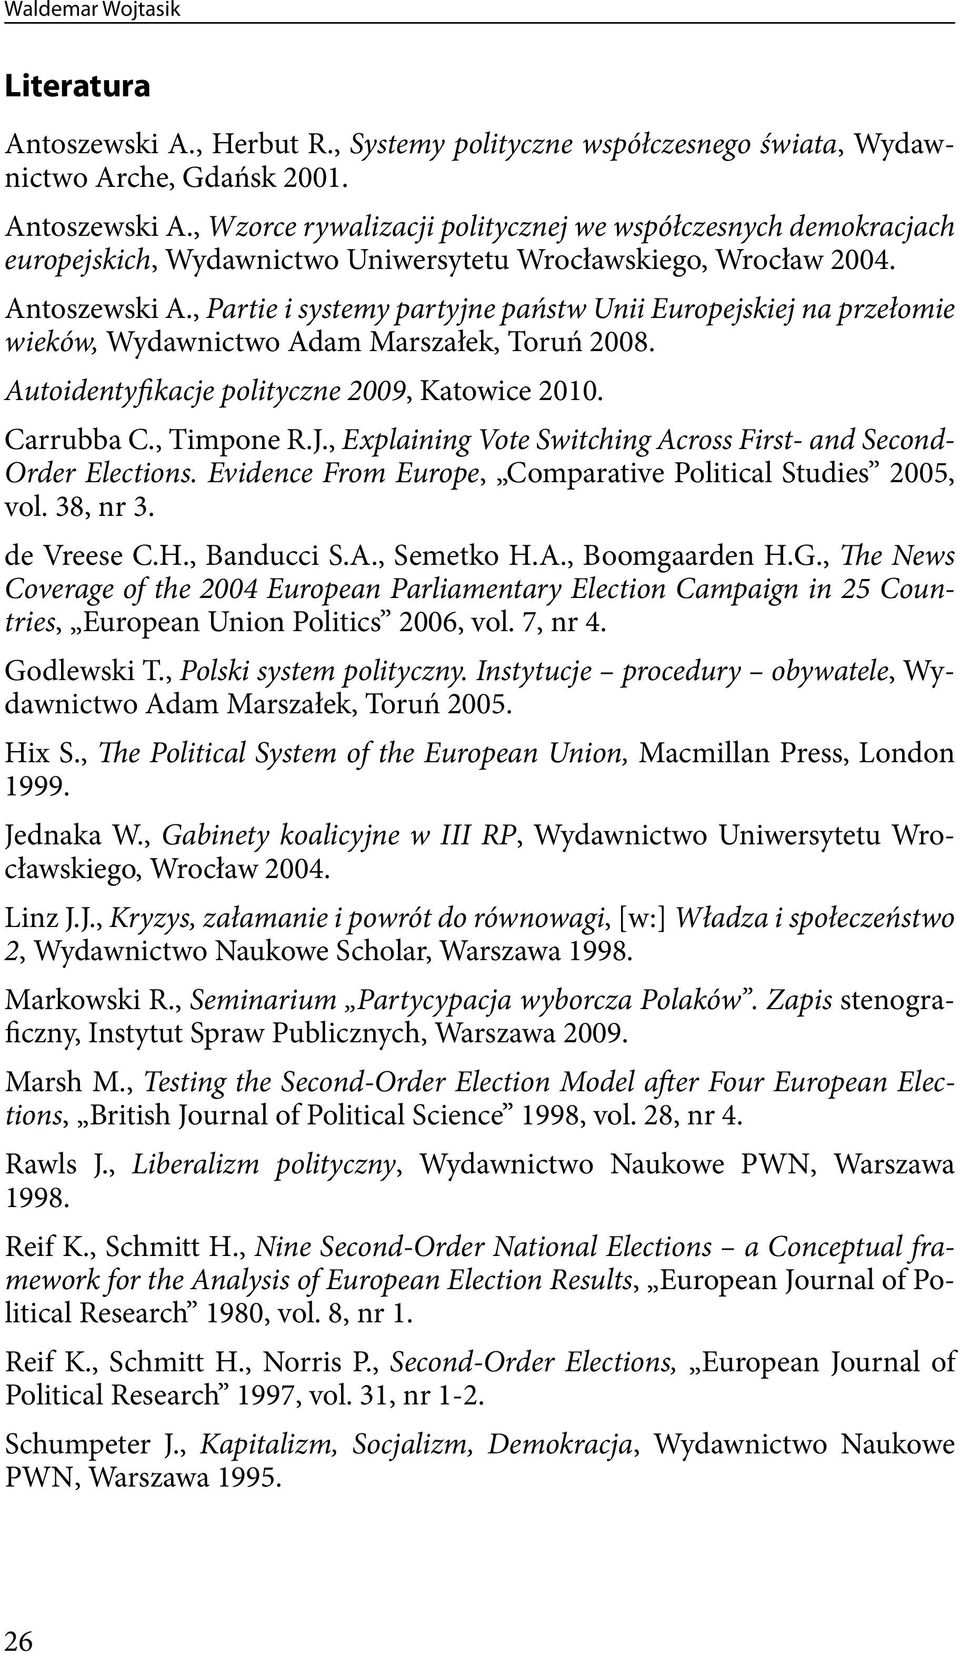 , Timpone R.J., Explaining Vote Switching Across First- and Second- Order Elections. Evidence From Europe, Comparative Political Studies 2005, vol. 38, nr 3. de Vreese C.H., Banducci S.A., Semetko H.